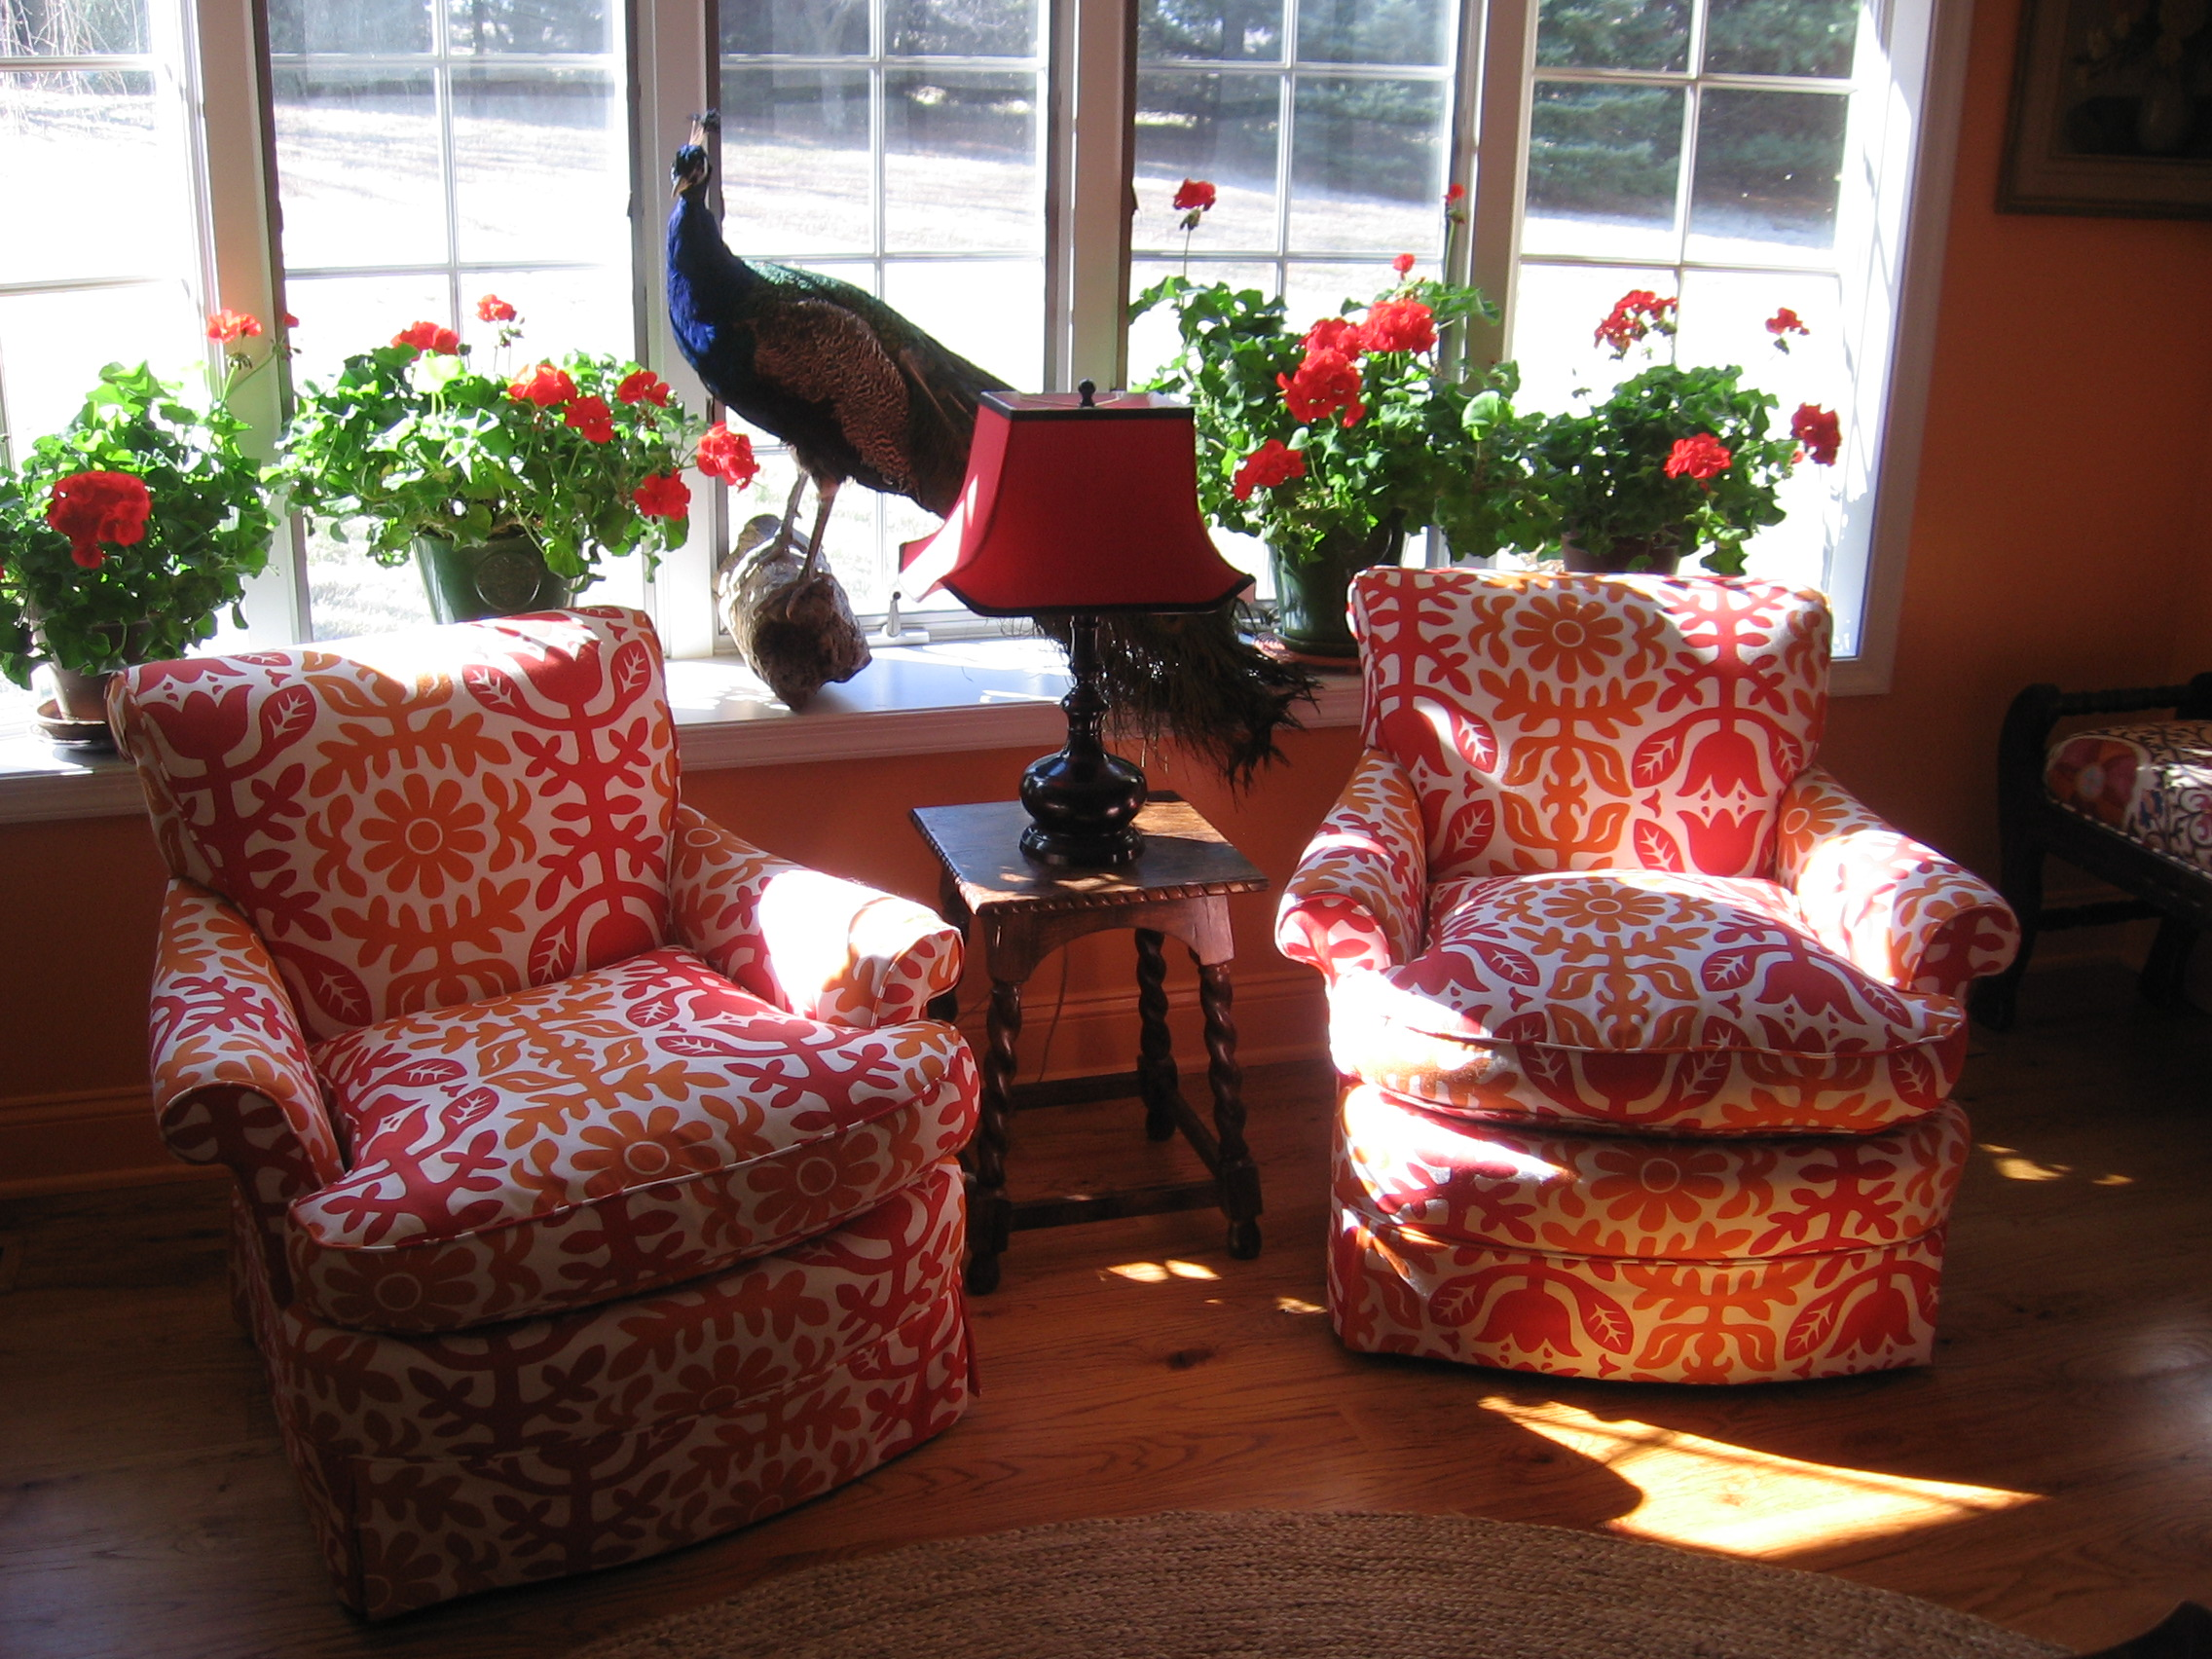 Charmant Furniture Repair Company Specializing In Re Upholstery